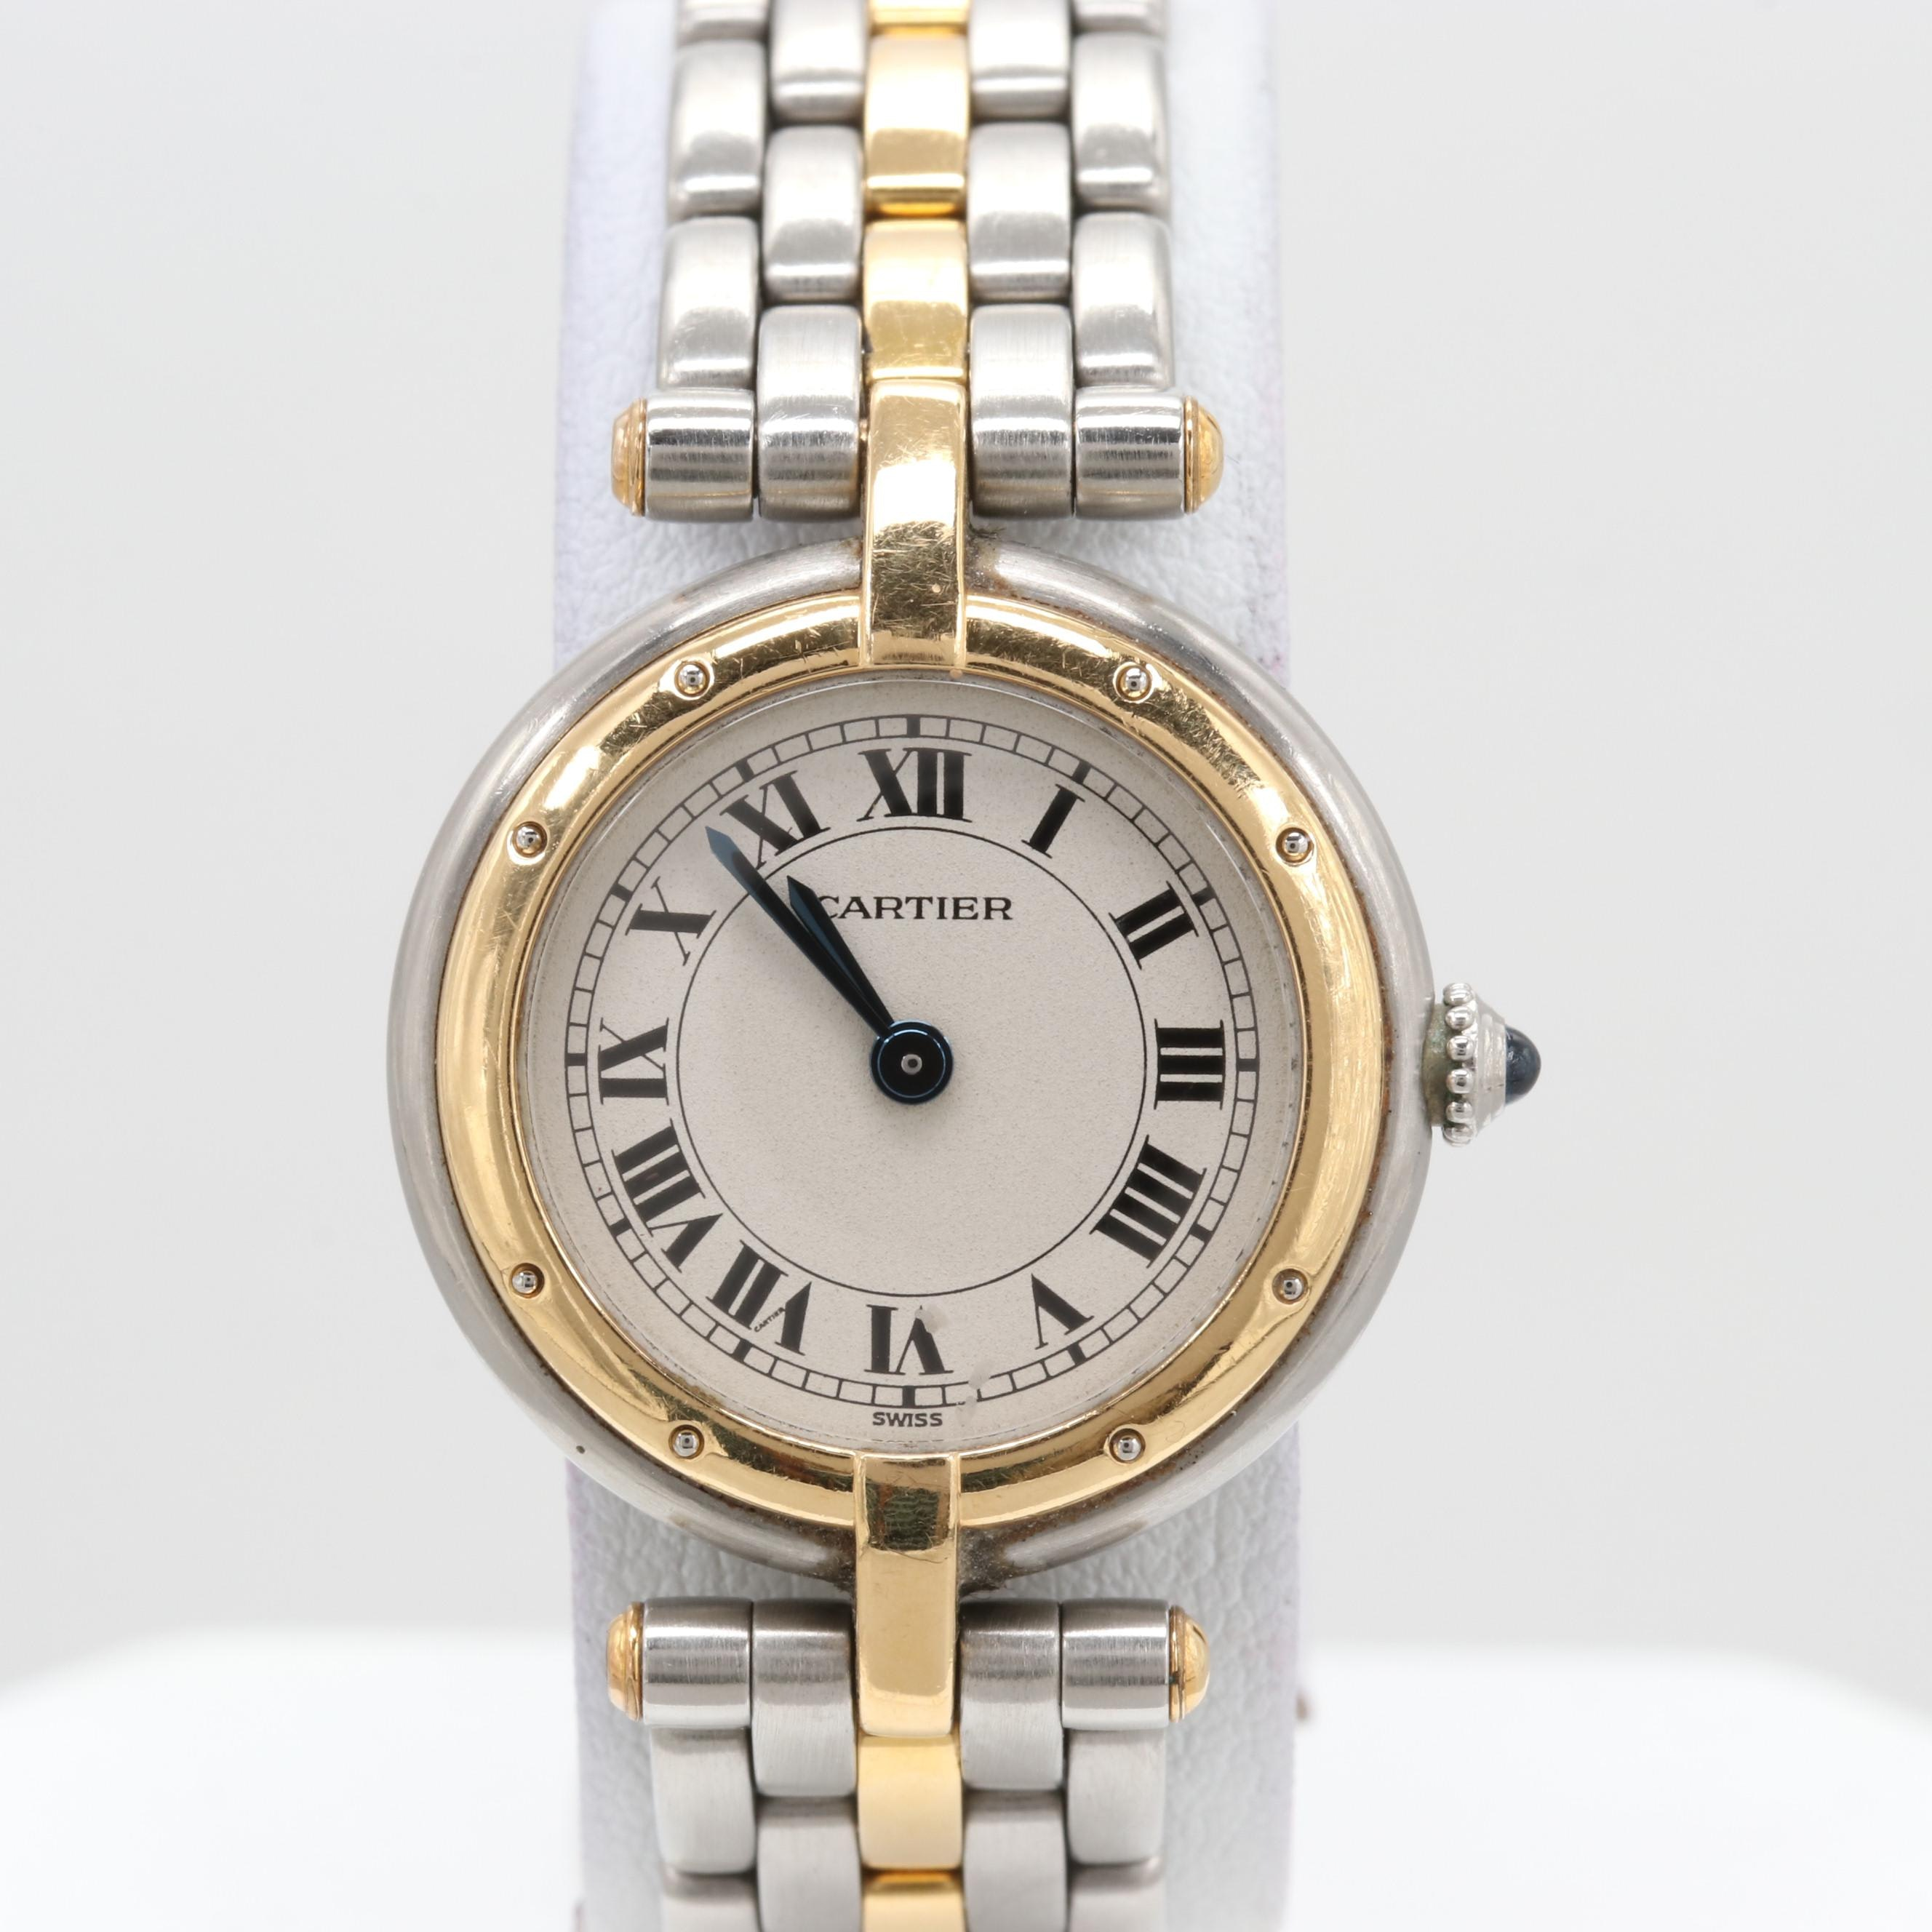 Cartier Panthere 18K Yellow Gold and Stainless Steel Wristwatches